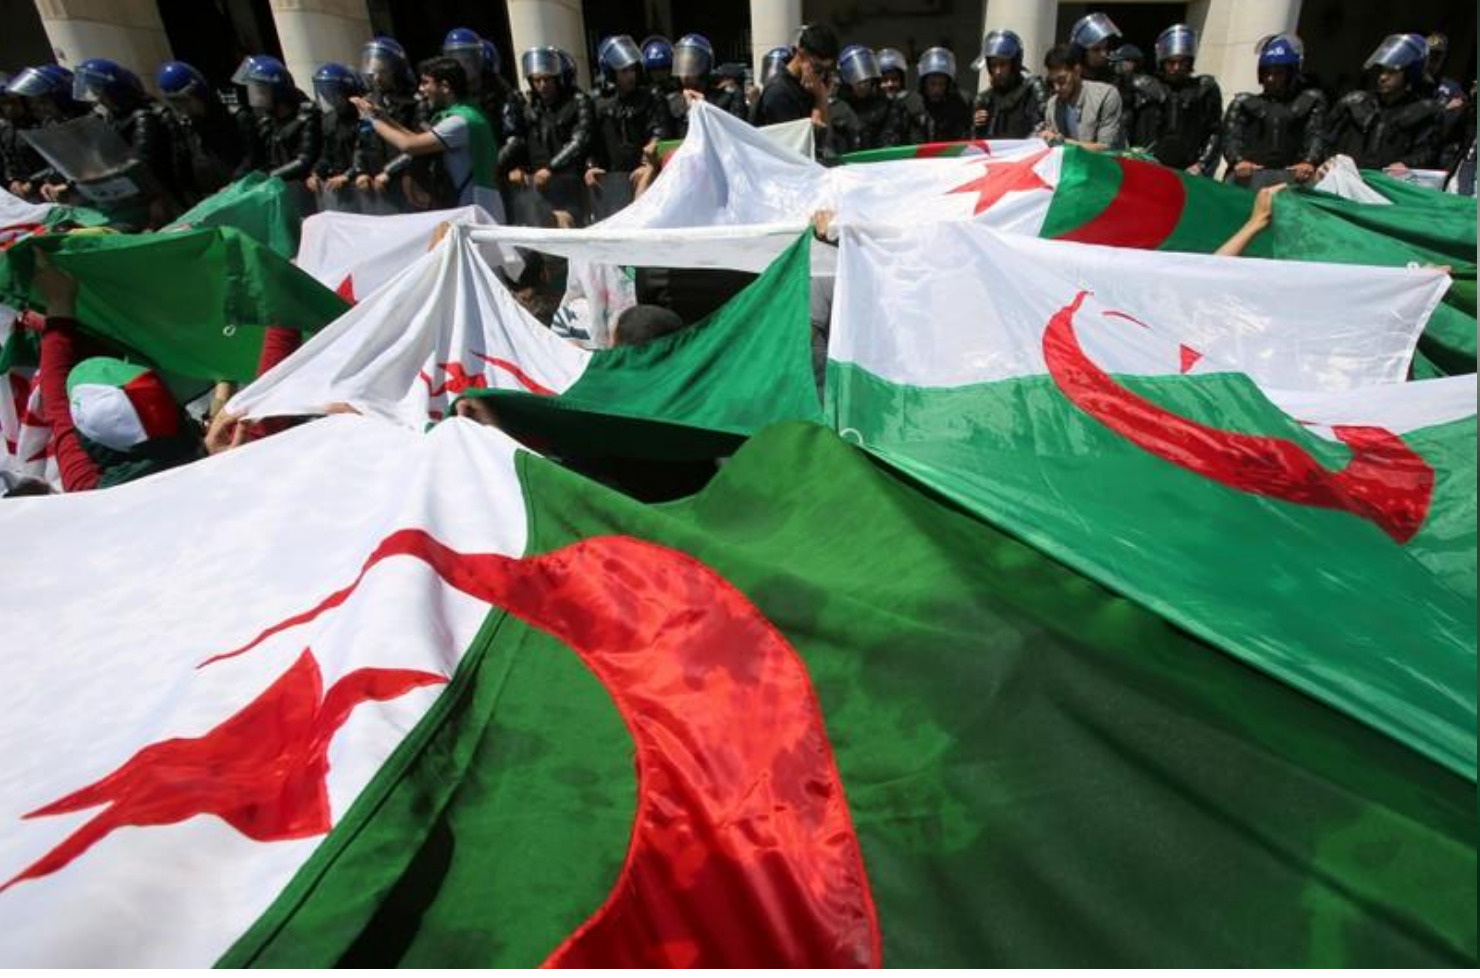 Police members stand guard as students carry national flags during an anti-government protest in Algiers, Algeria May 14, 2019. REUTERS/Ramzi Boudina/File Photo